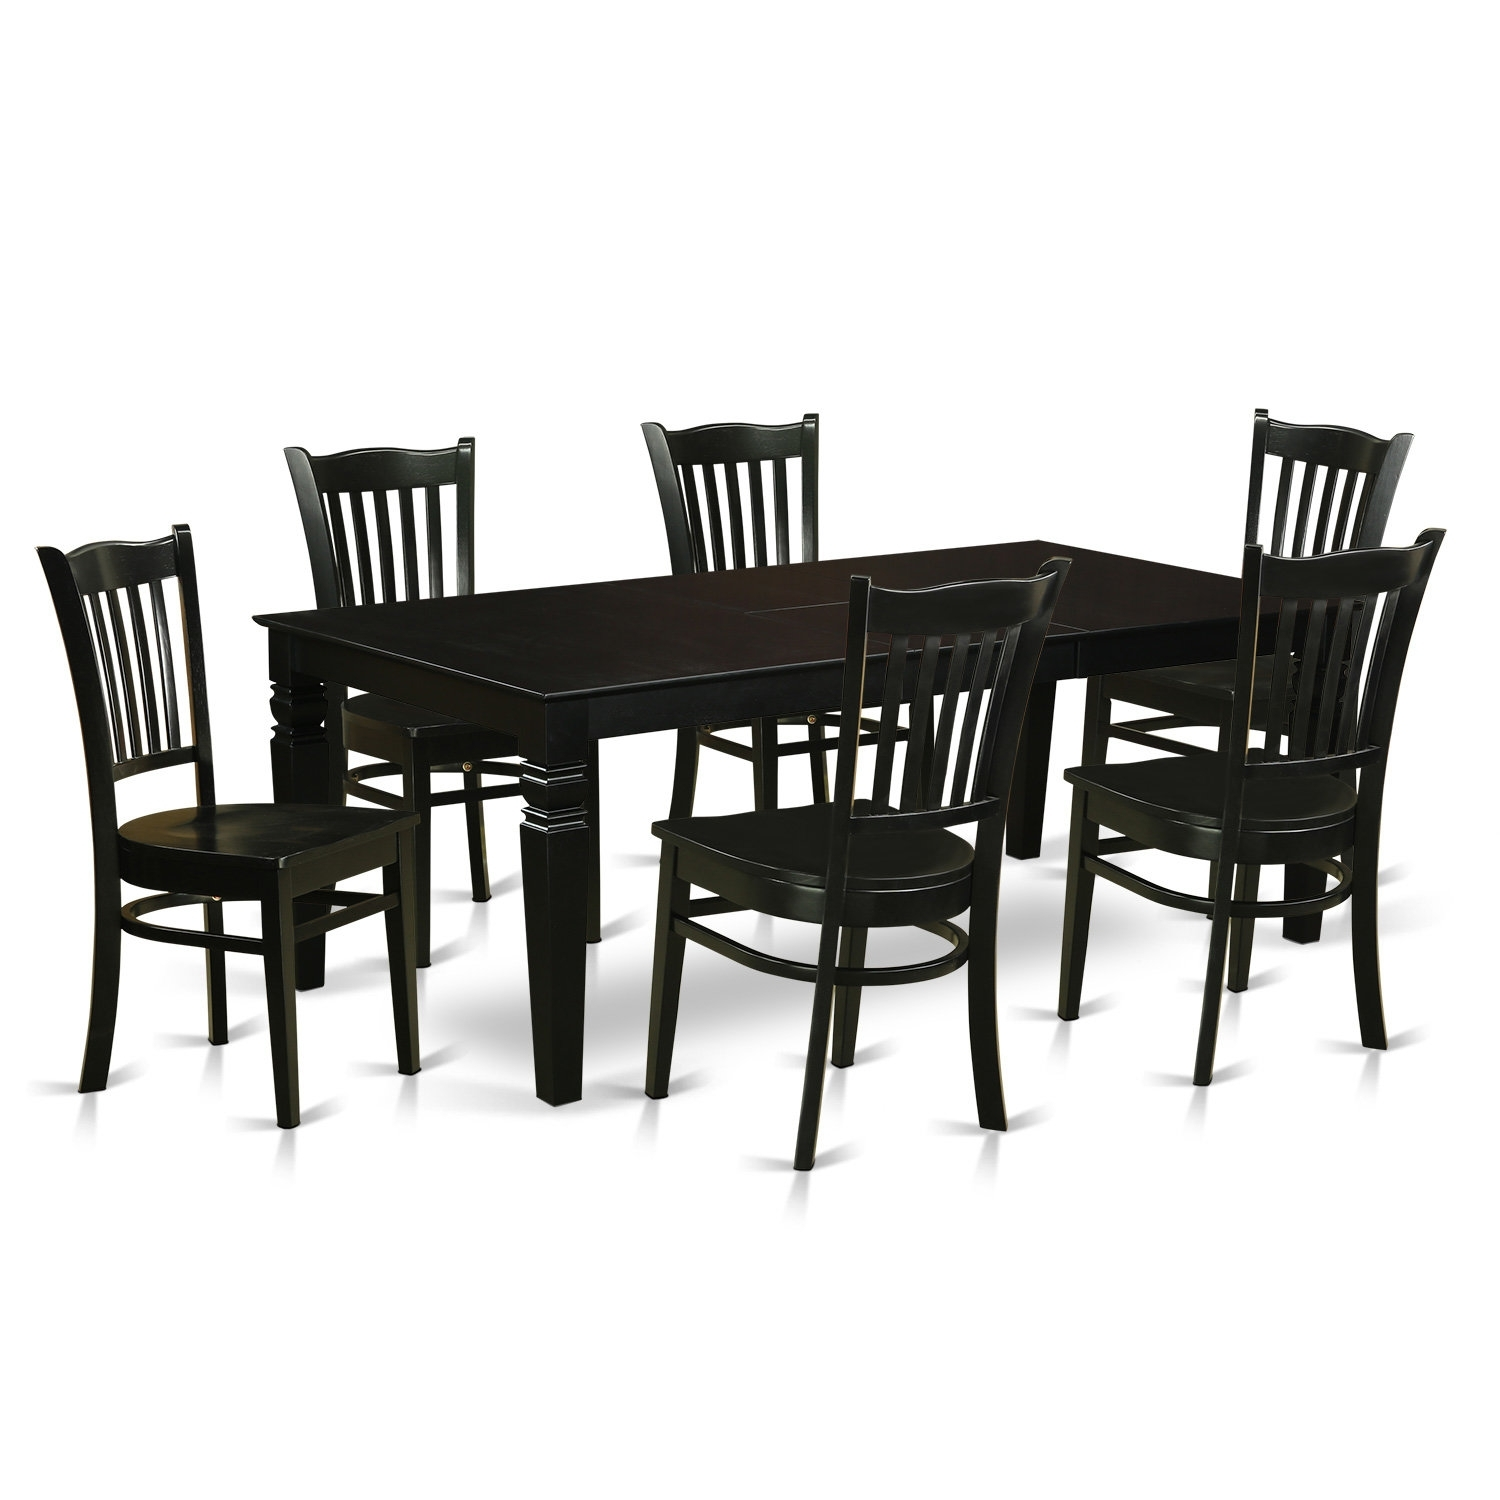 Darby Home Co Beldin 7 Piece Dining Set | Wayfair Within Current Candice Ii 7 Piece Extension Rectangular Dining Sets With Uph Side Chairs (Photo 6 of 20)